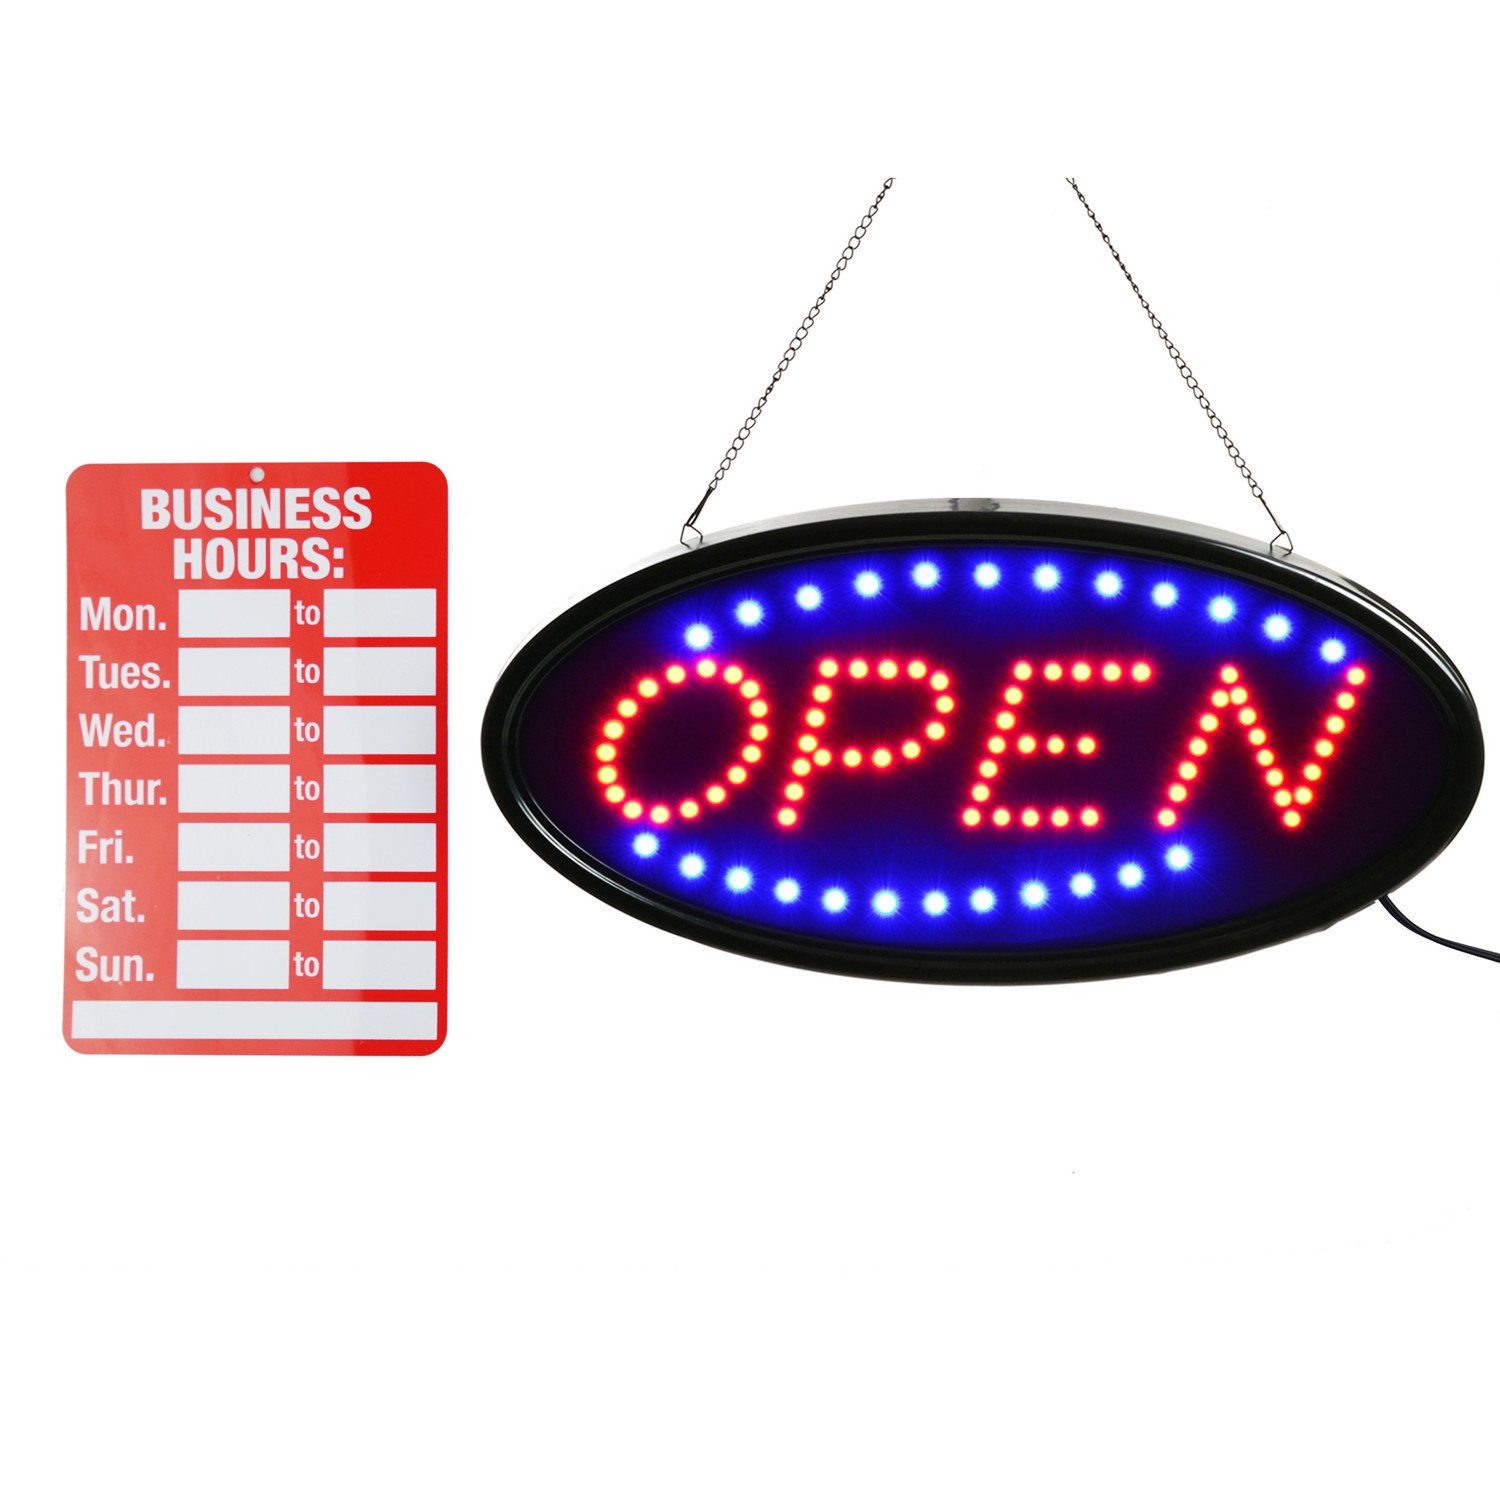 Open LED Sign,LED business open sign advertisement board Electric Display Sign,Light Up Sign 18.9''x9.84'' Flashing & Steady light, for business, walls, window, shop, bar, hotel (Blue+Red)